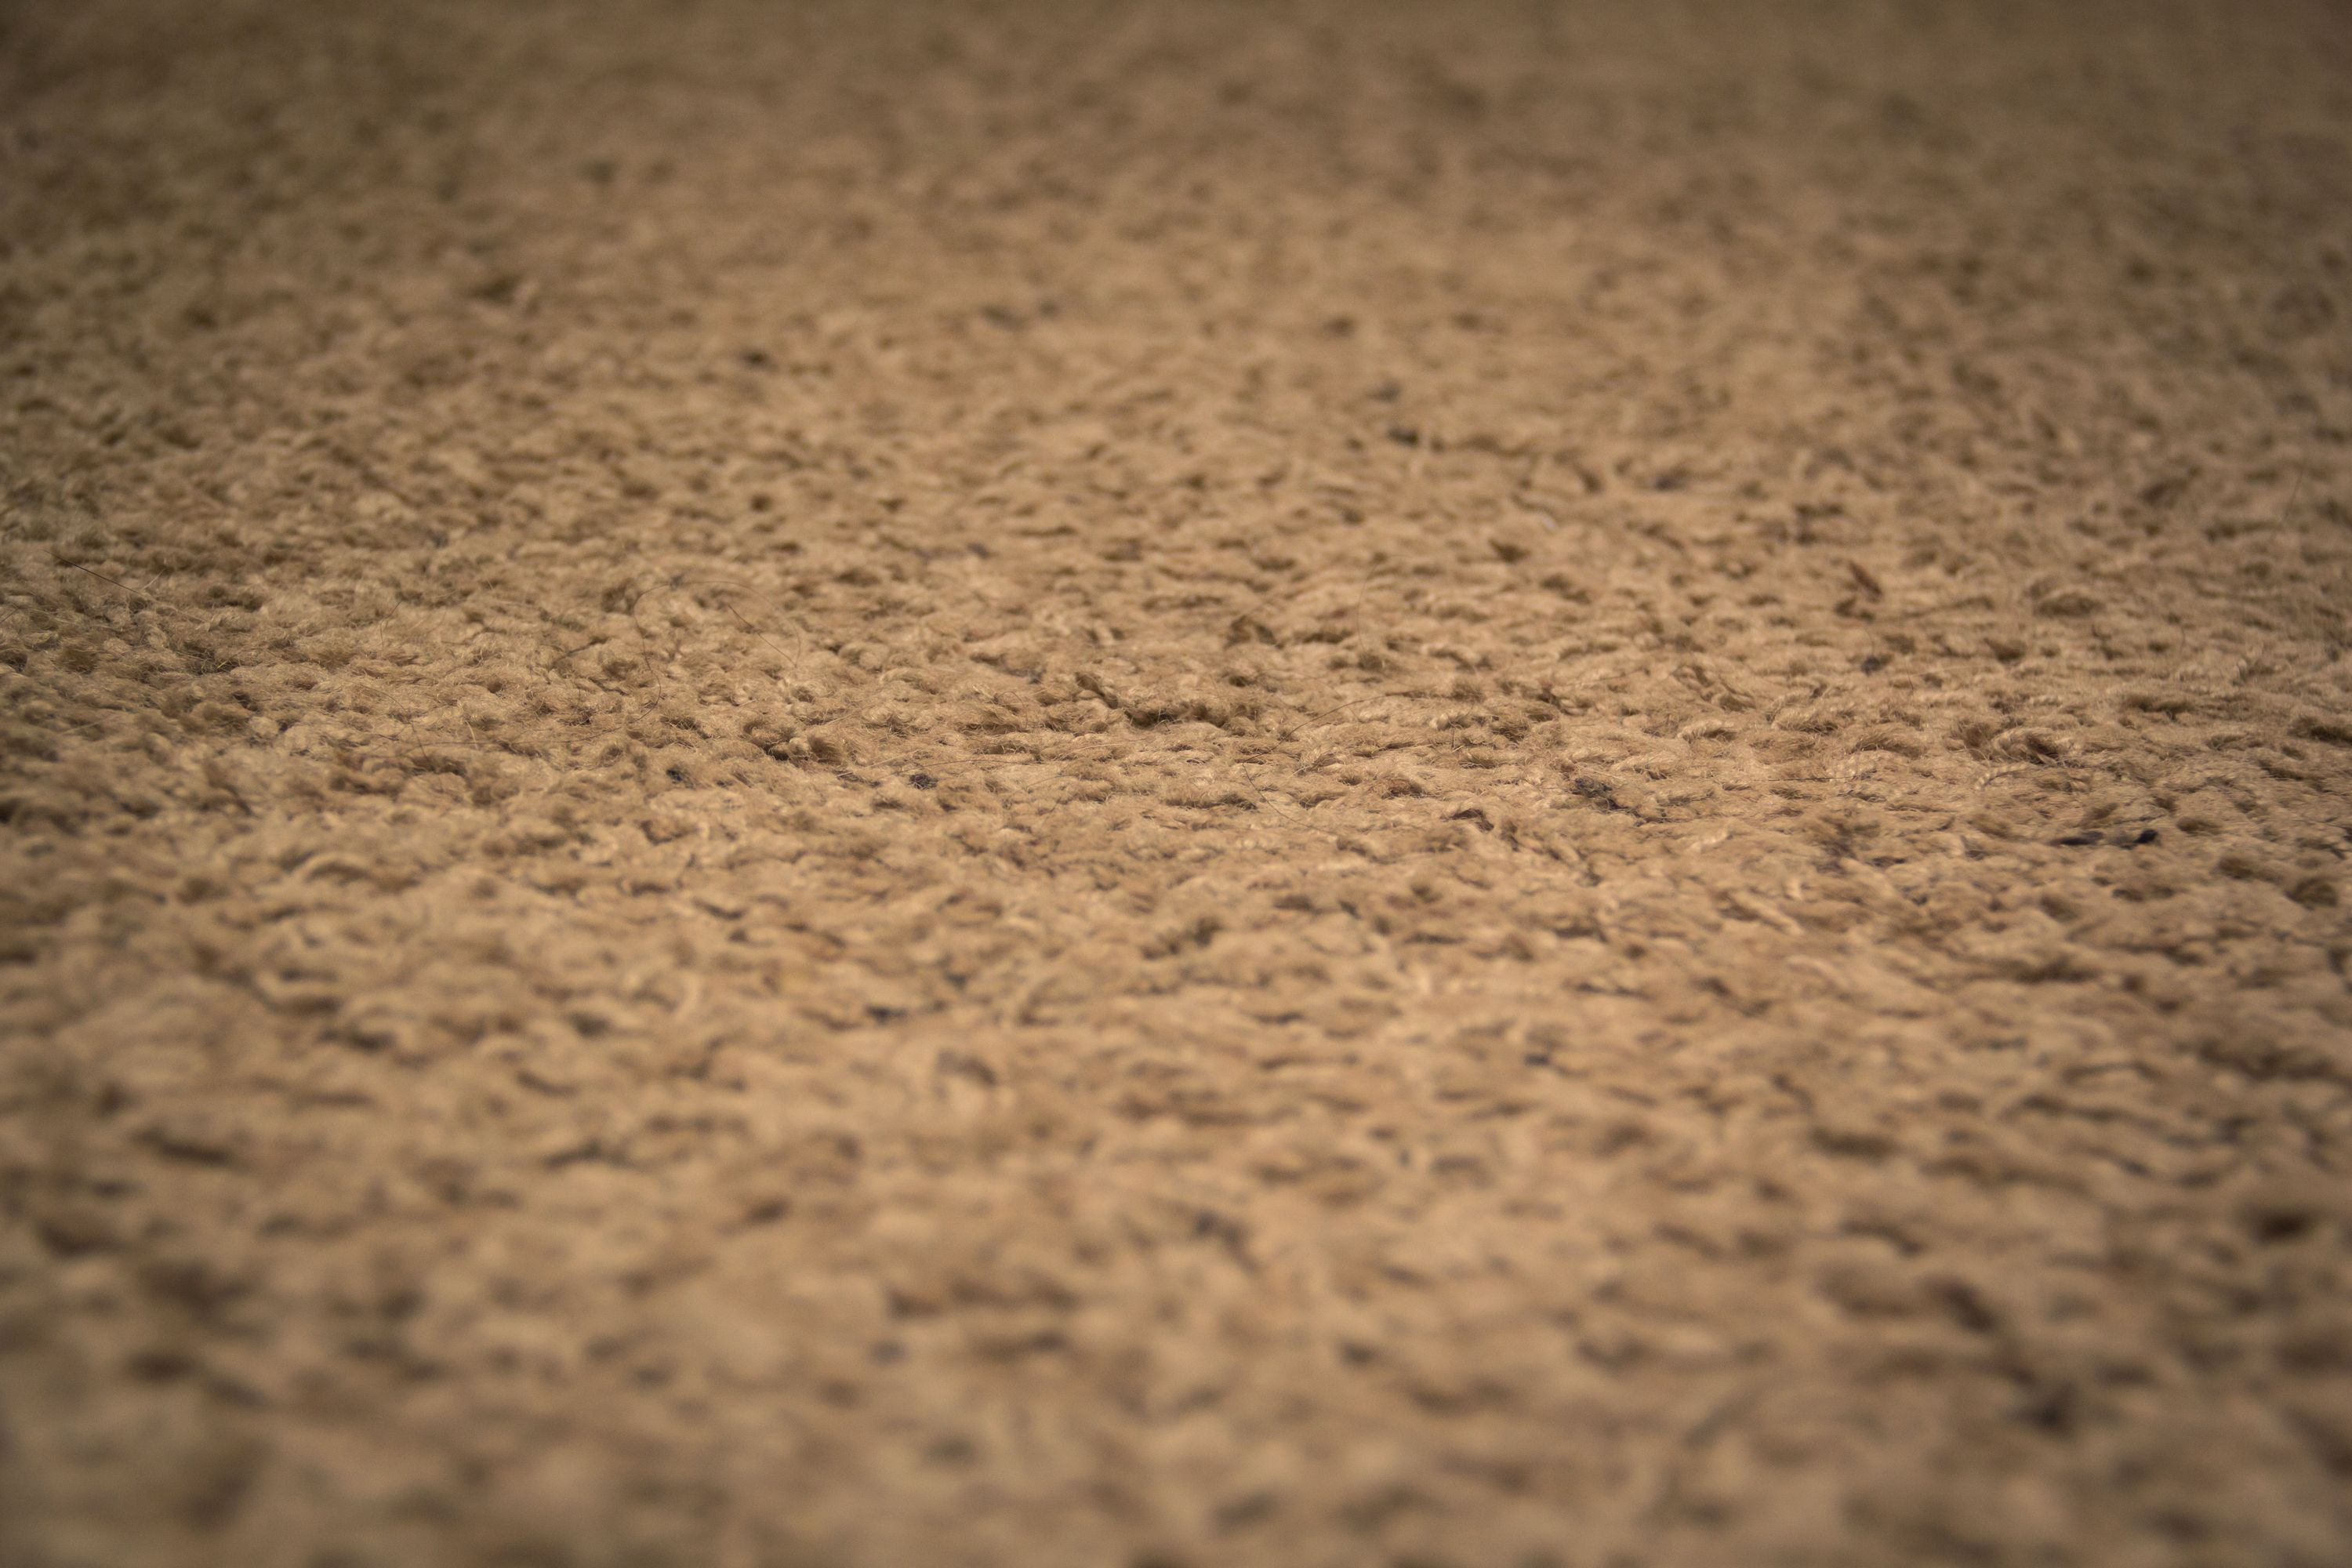 How to Get Makeup Stains Out of Carpet How to clean